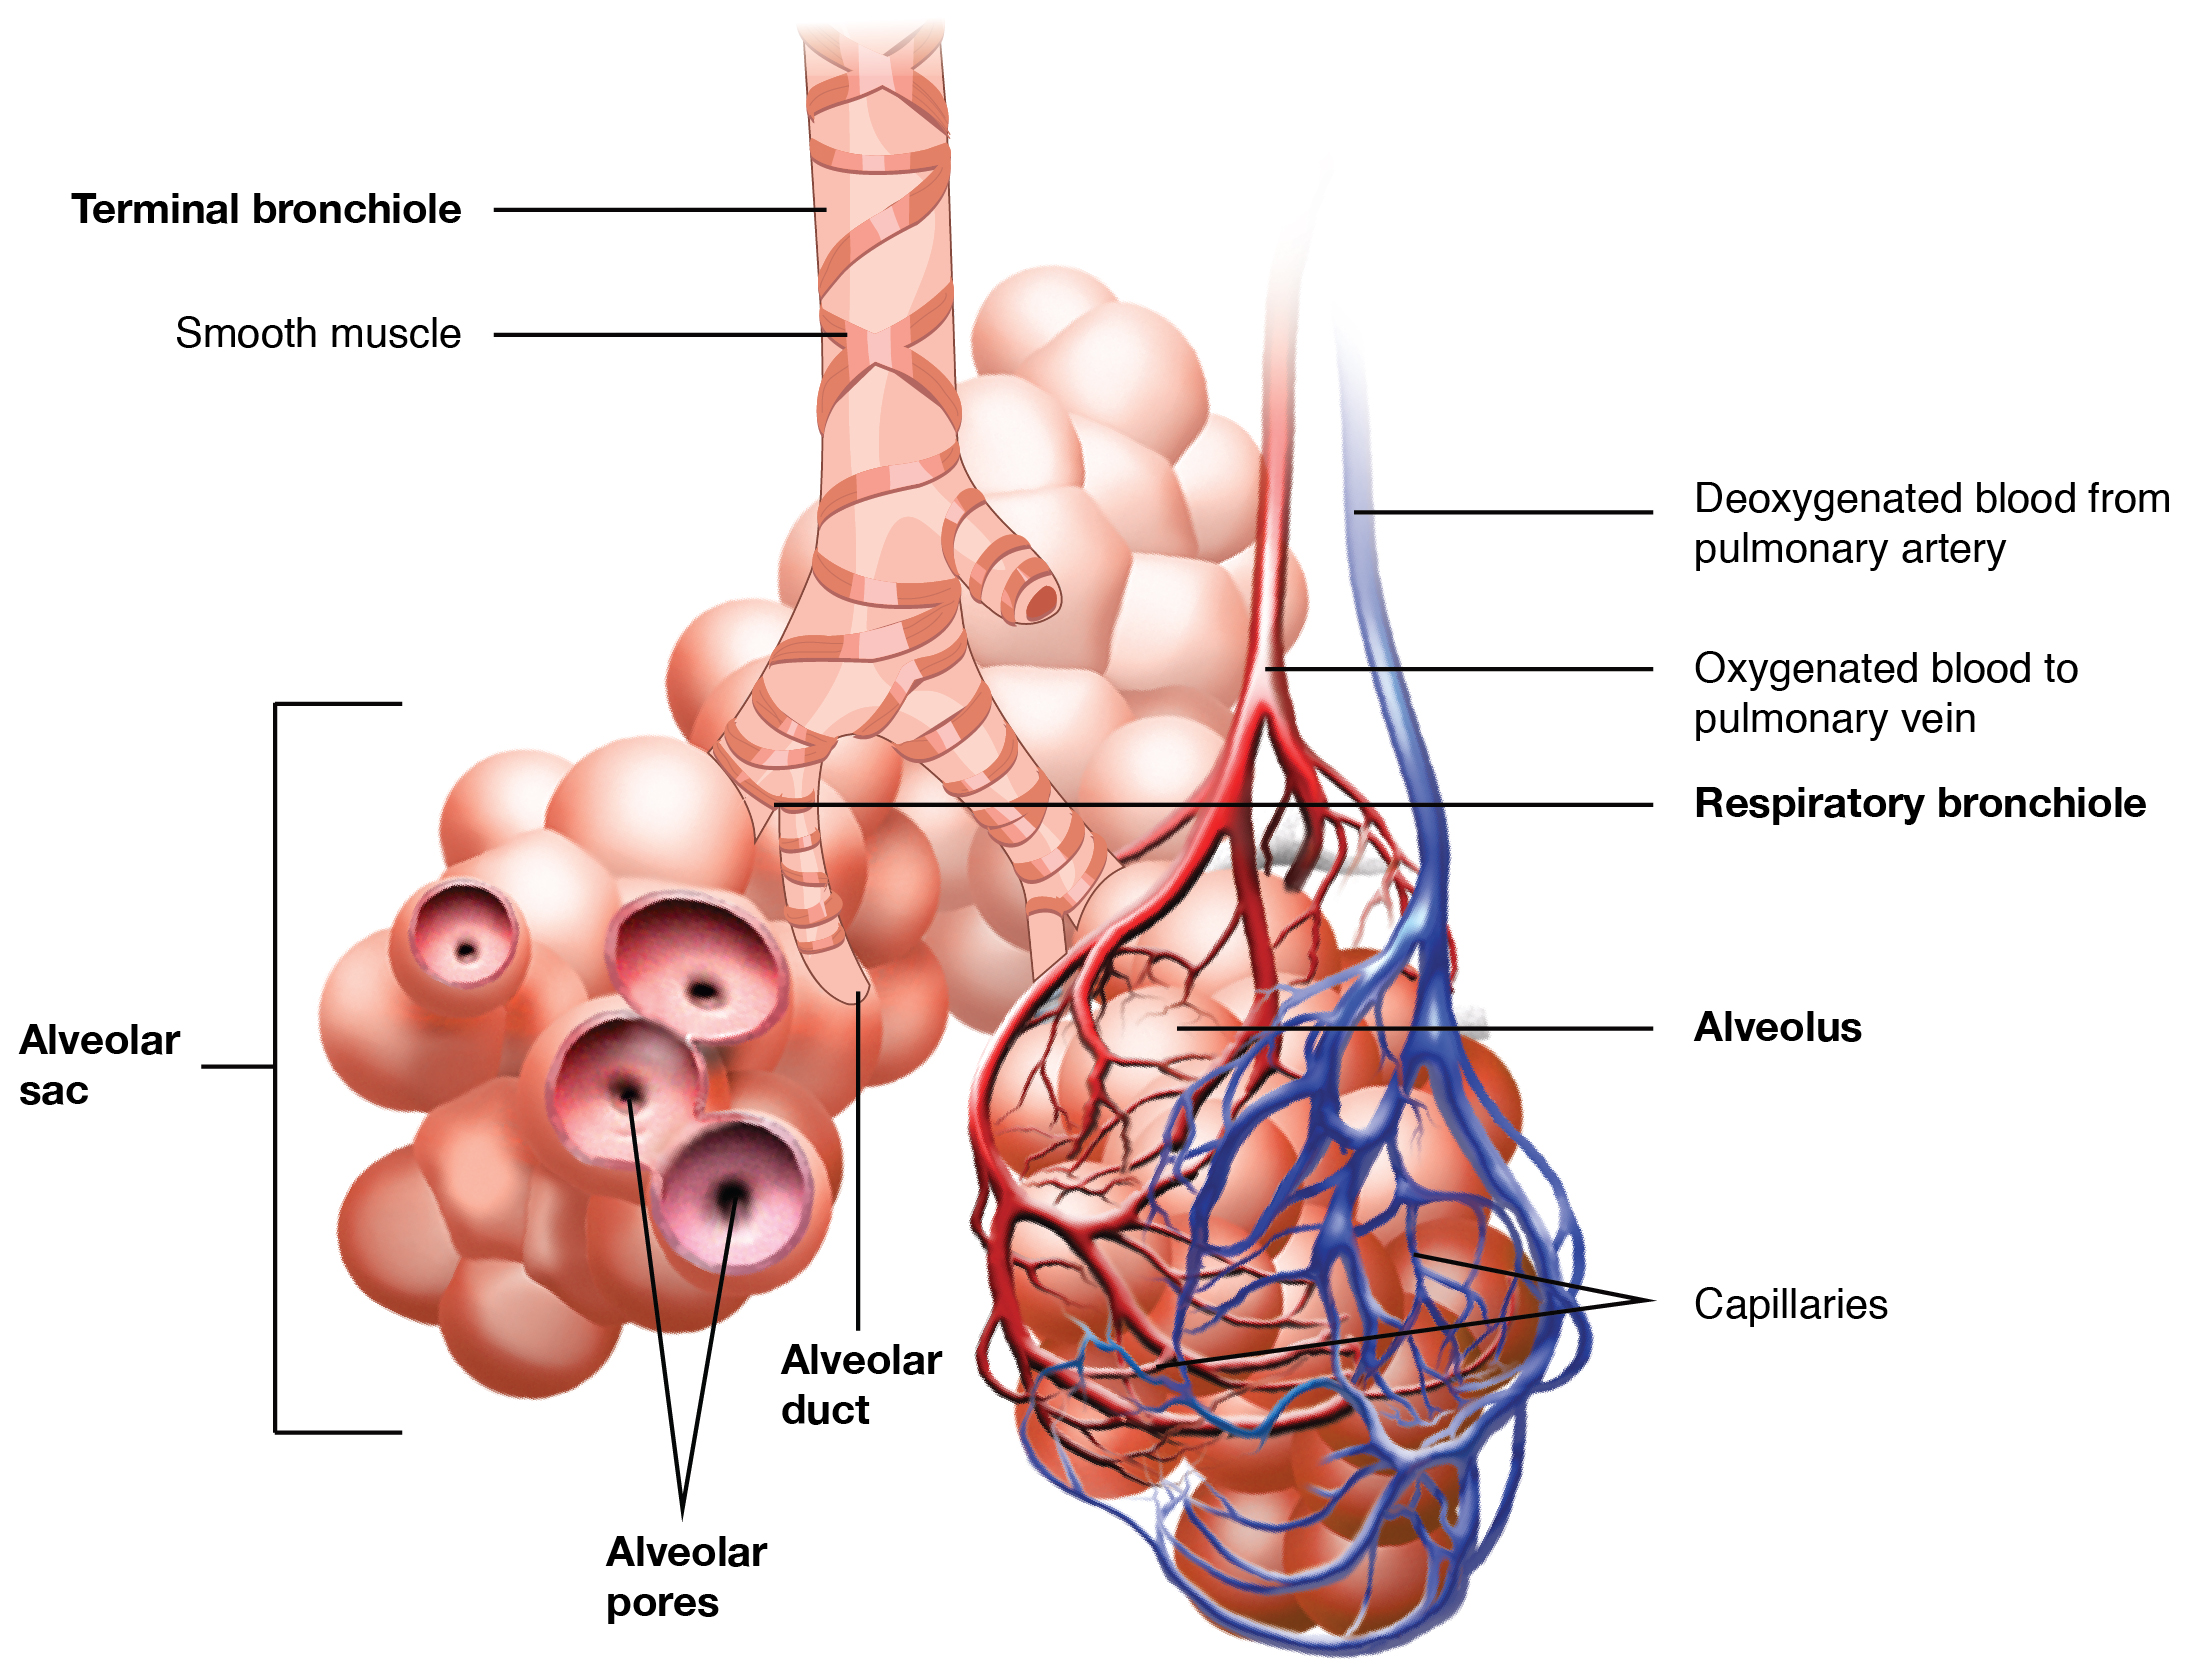 Organs And Structures Of The Respiratory System Anatomy And Physiology